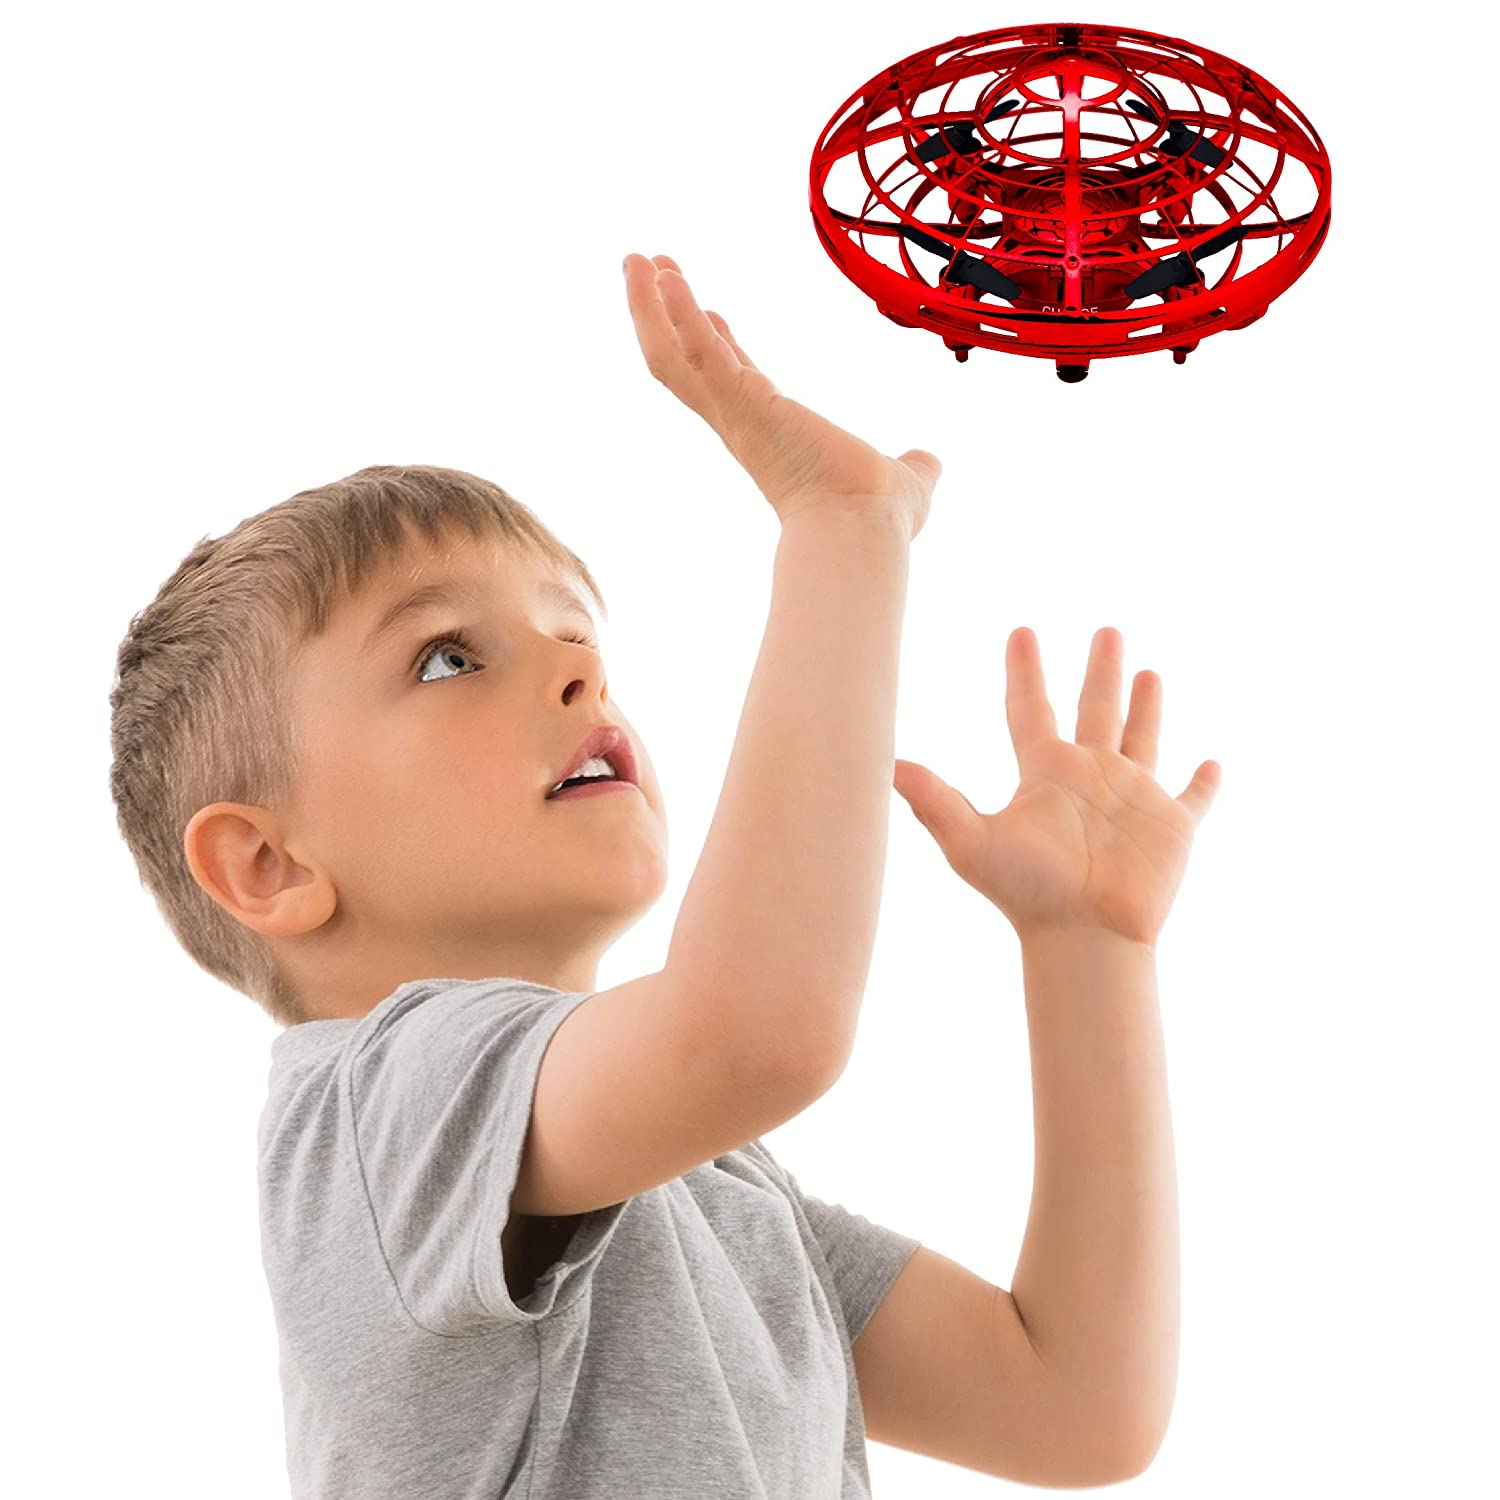 Mini Drone and Helicopter Drone Toys